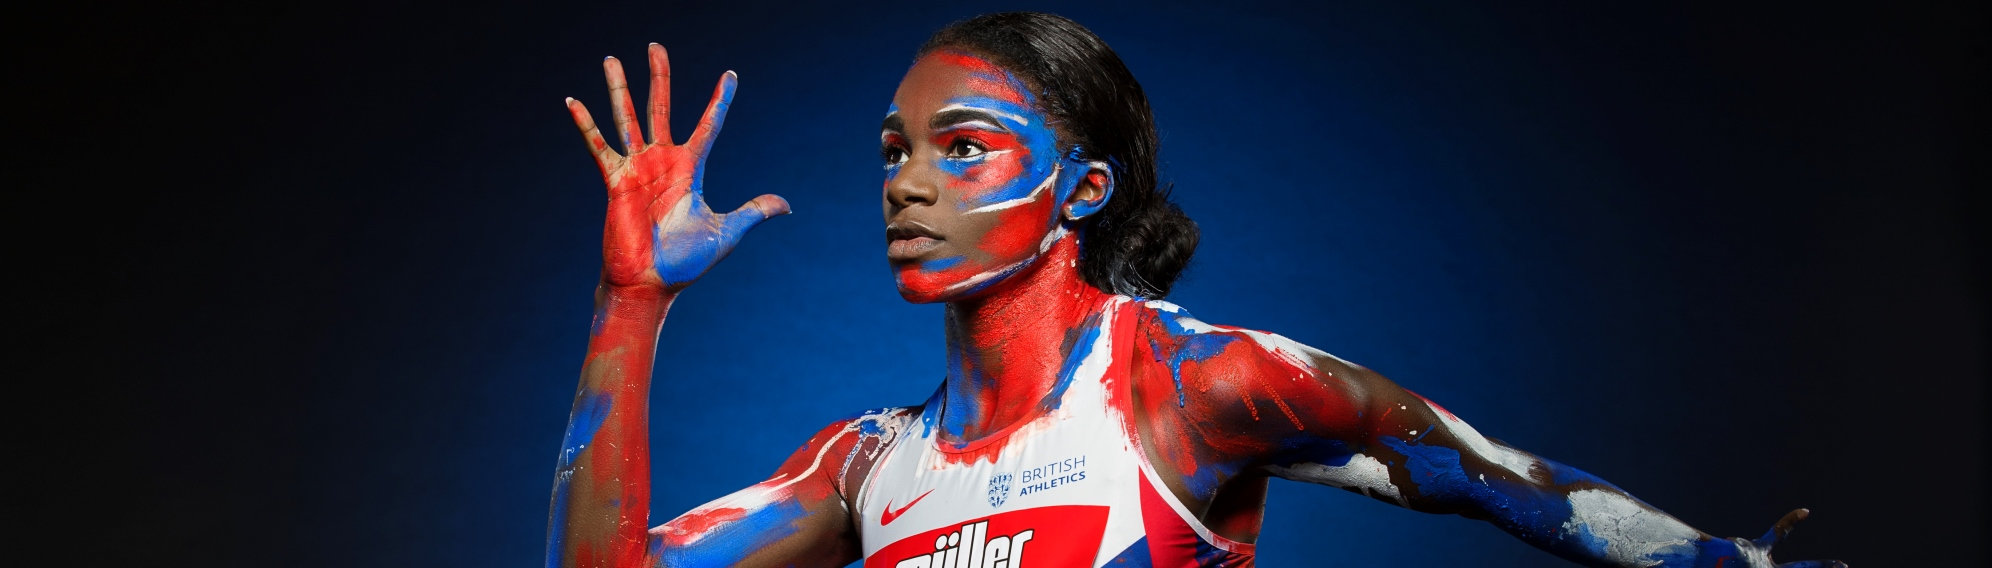 MULLER ANNIVERSARY GAMES - Date:July 9, 2017Location:London, EnglandEvent:Kara threw 61.06m for seventh place in the third installment of Diamond League events.